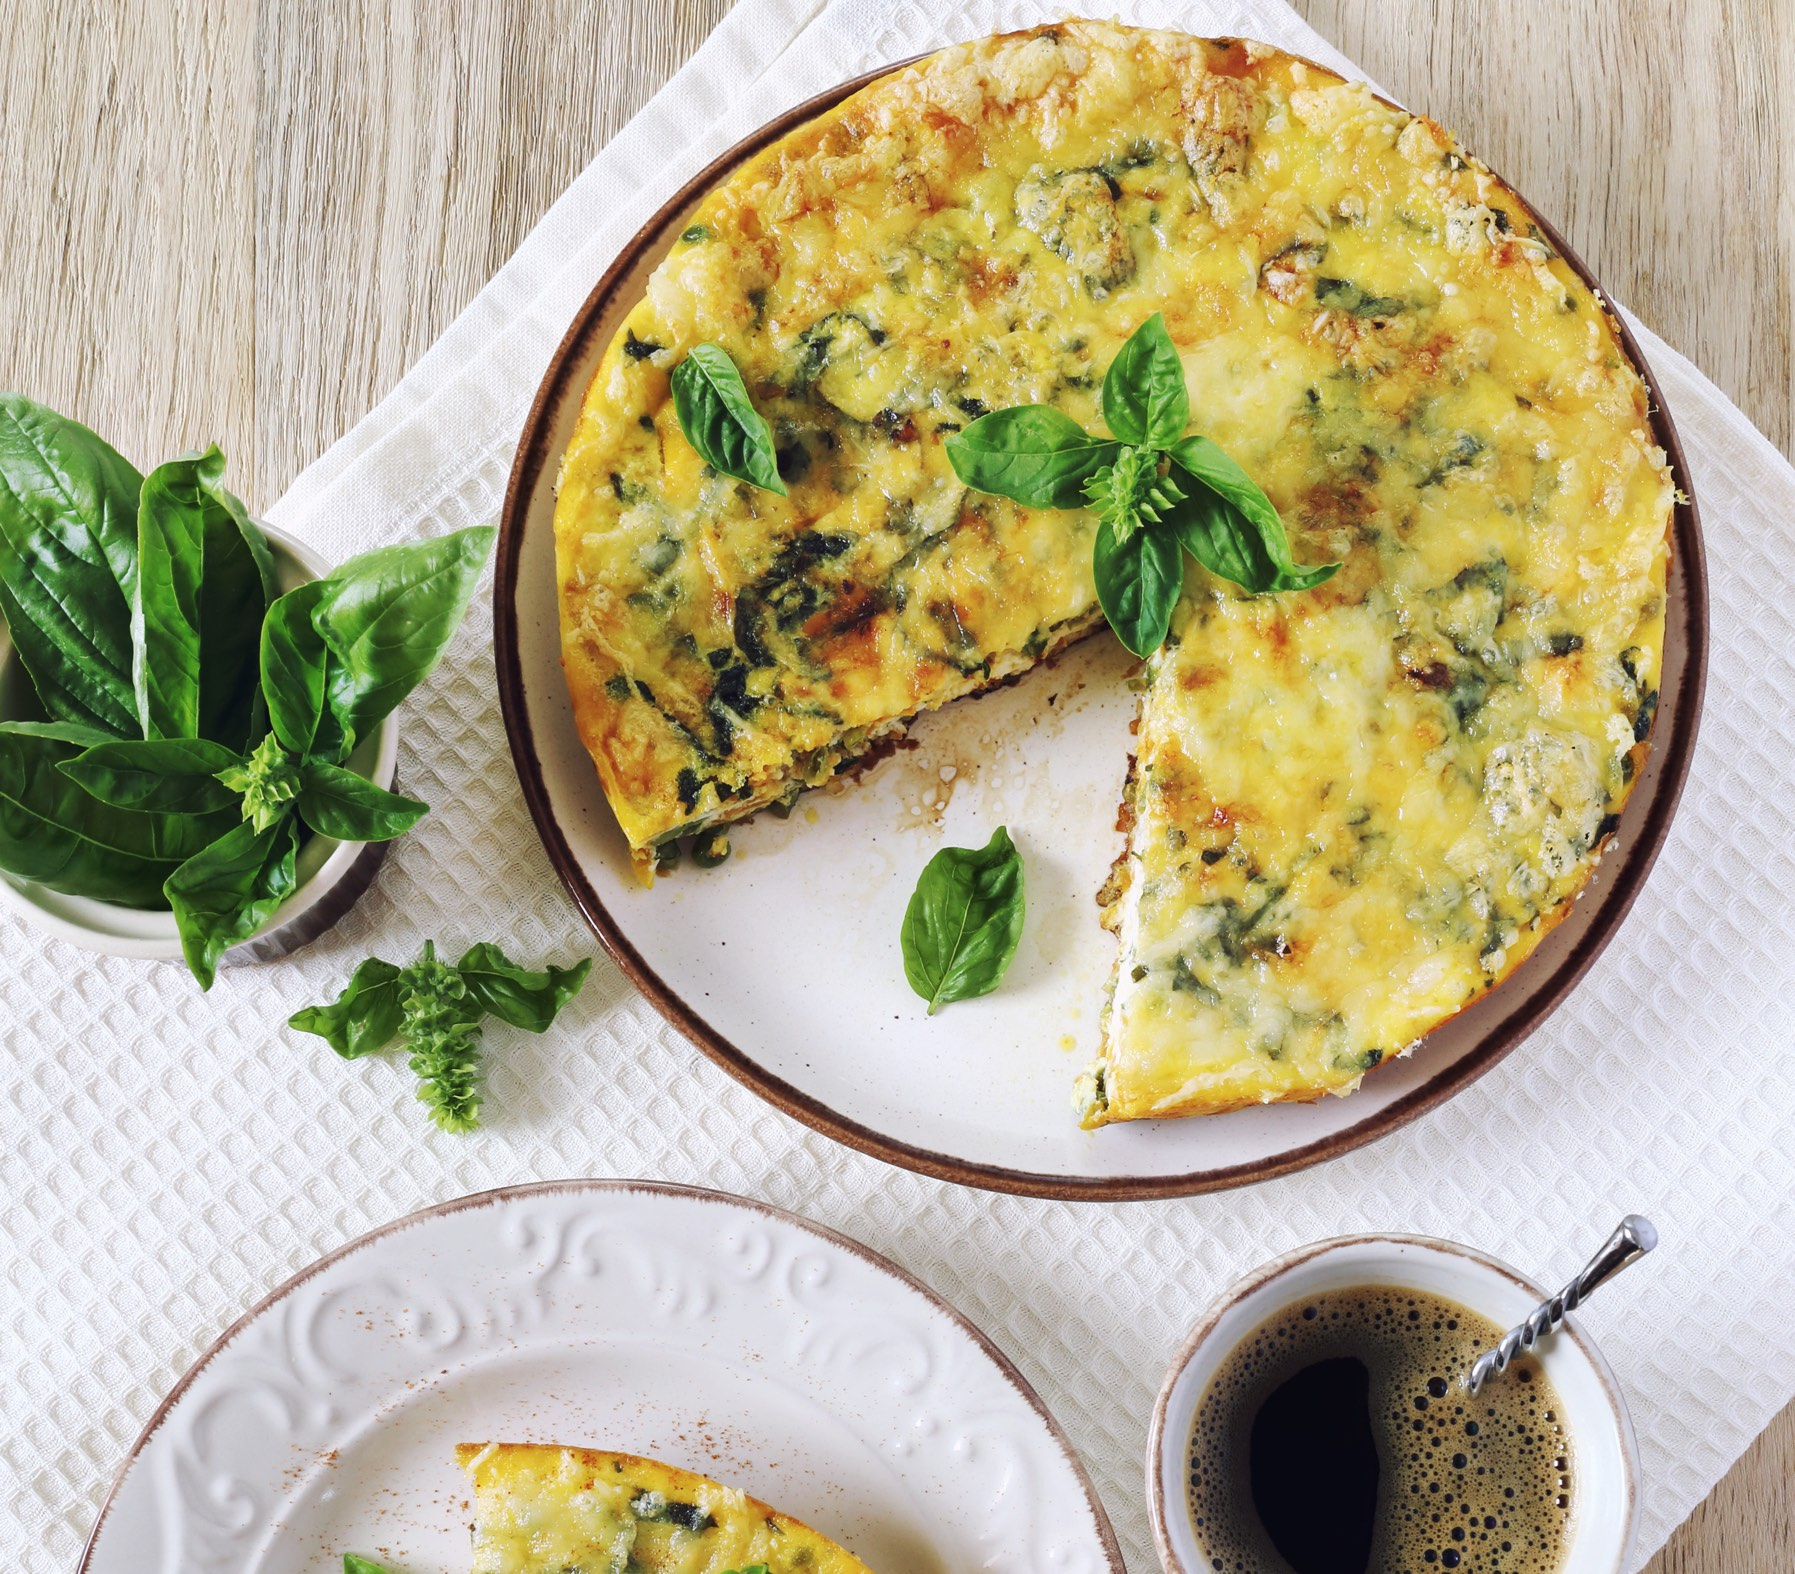 Broccoli and Turkey Sausage Frittata